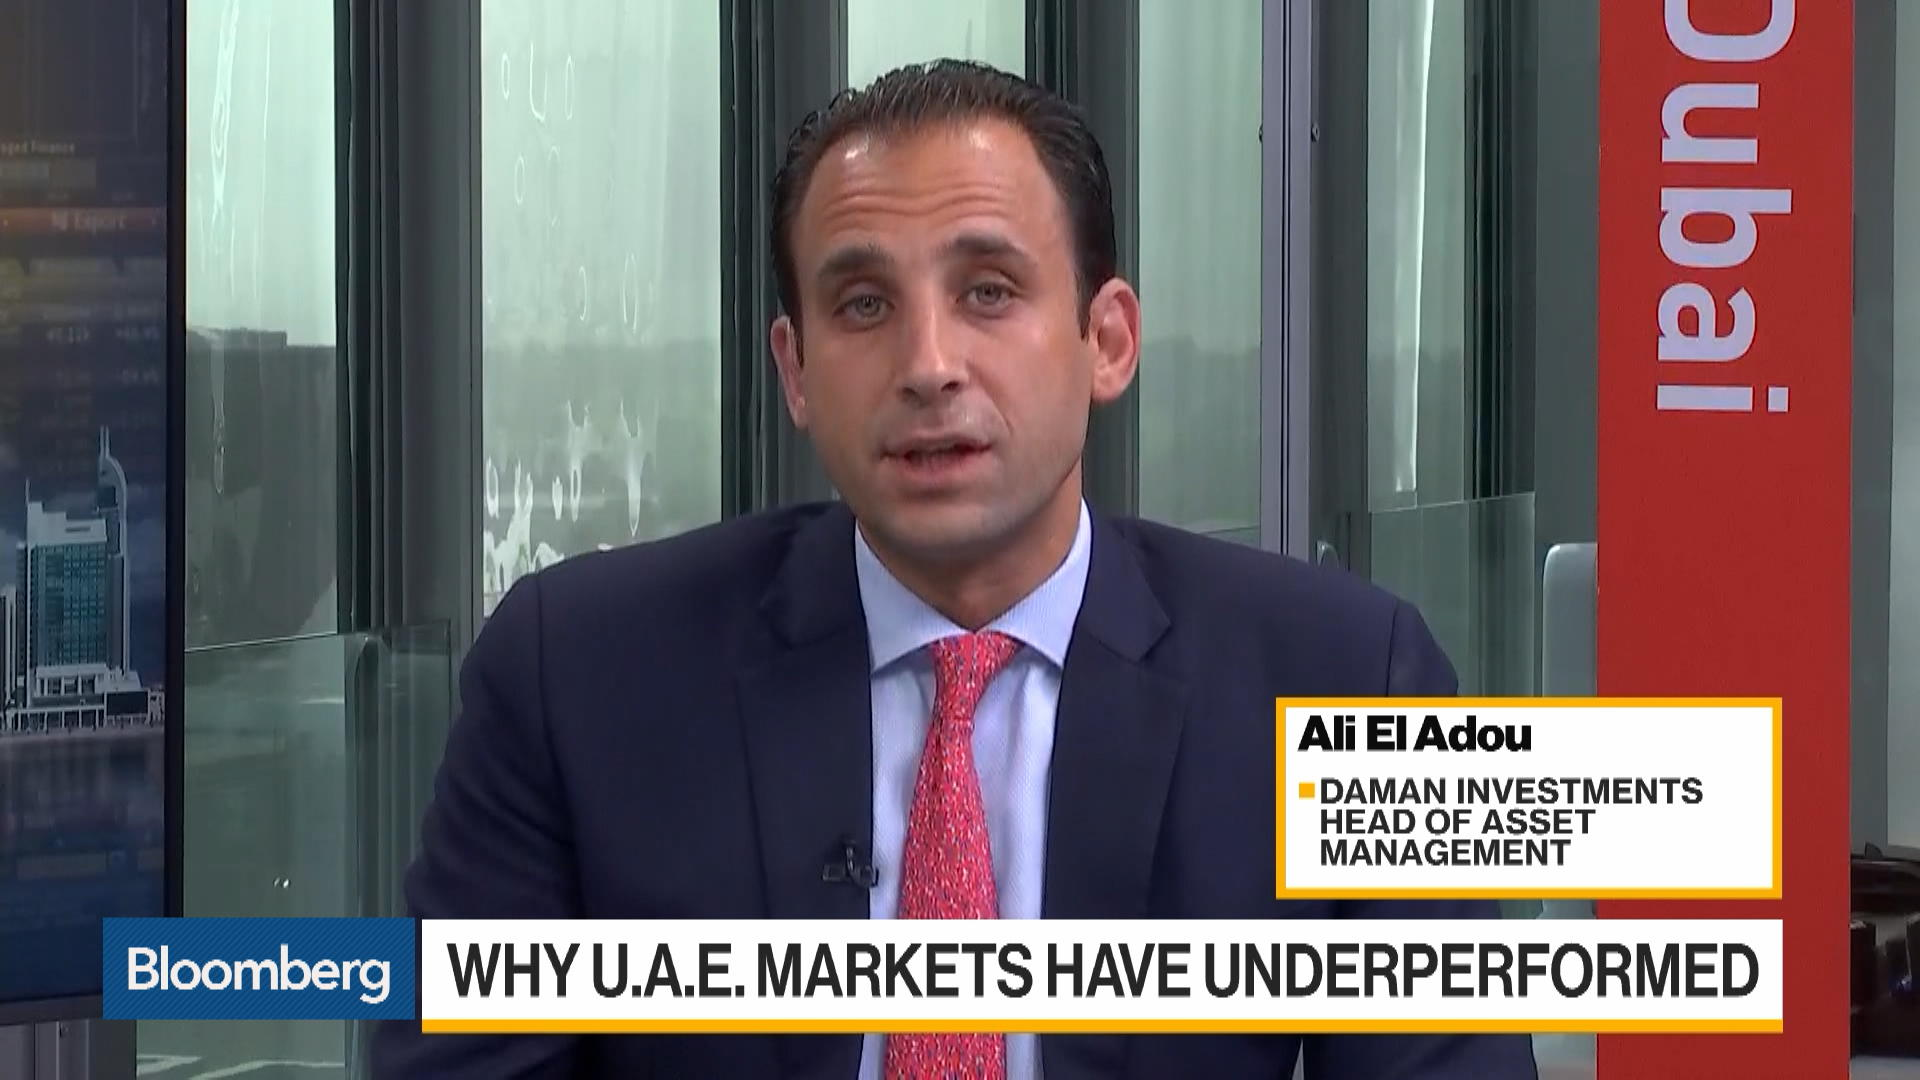 Daman Investments Head of Asset Management Ali El Adou on Investment Strategy, U.A.E. Markets